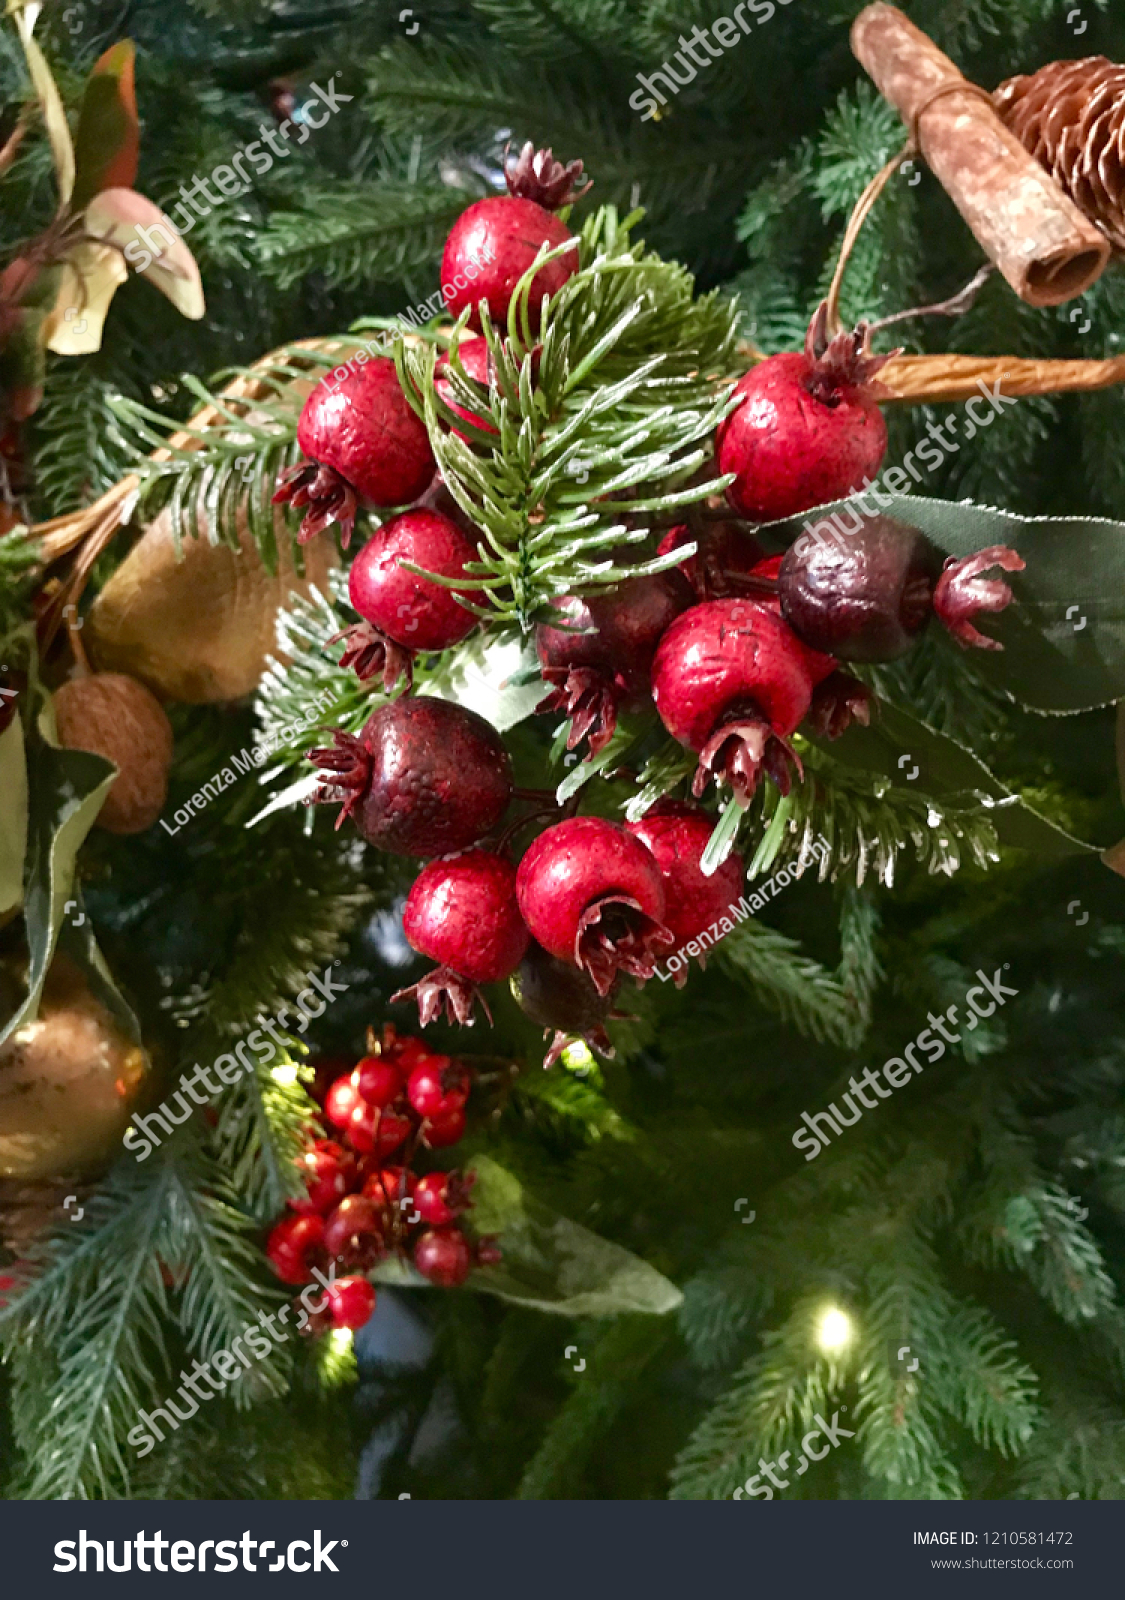 Festive Christmas Decorations Cranberries Holly Berries Stock Photo Edit Now 1210581472